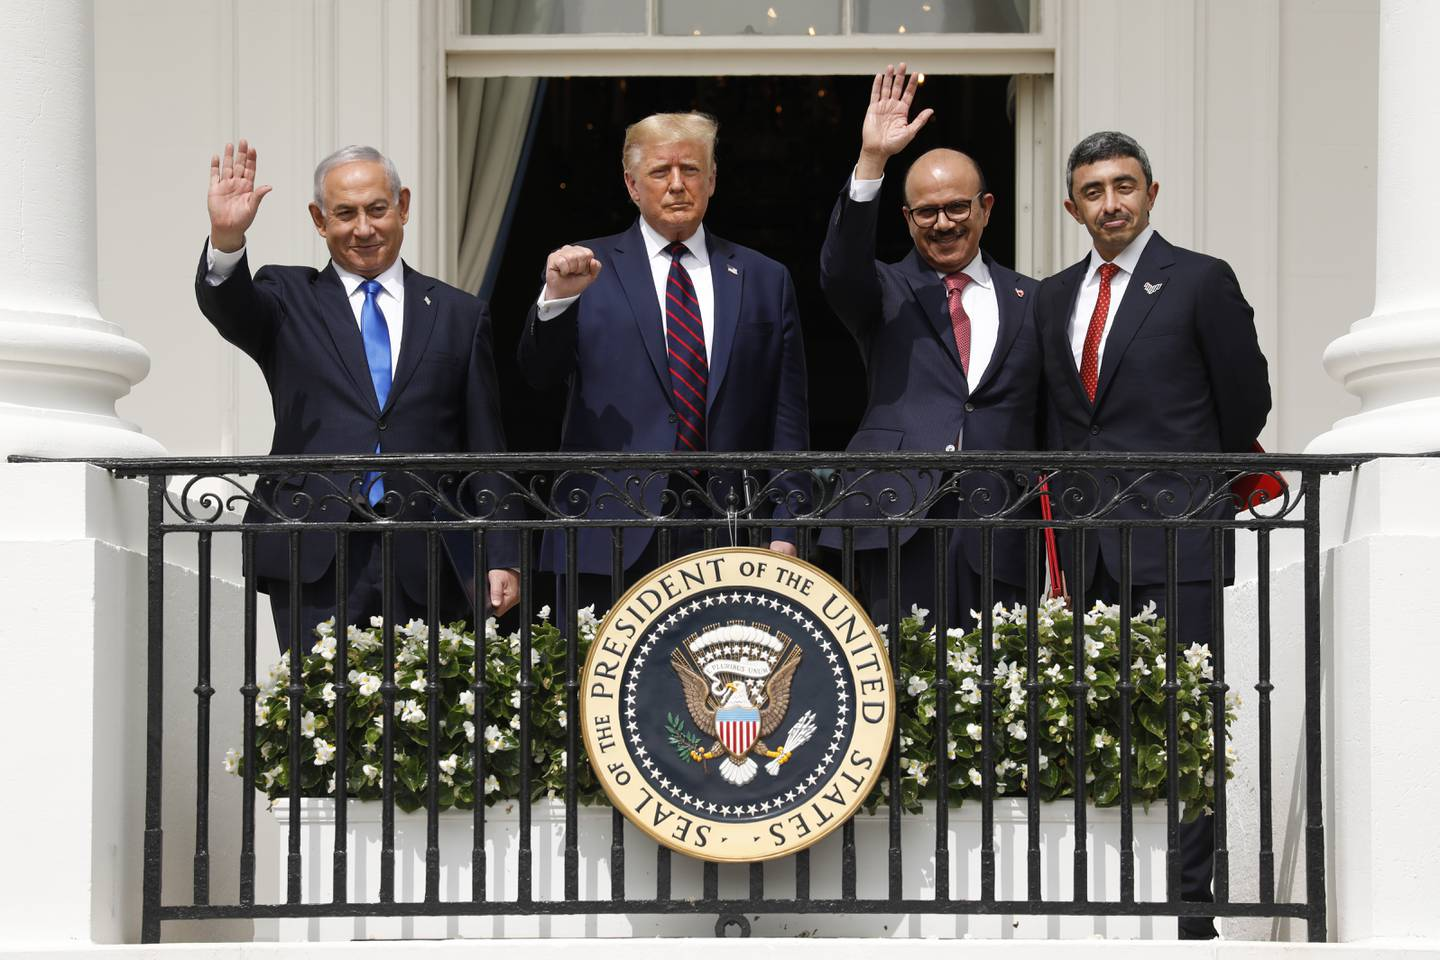 Benjamin Netanyahu, Israel's prime minister, from left, U.S. President Donald Trump, Abdullatif bin Rashid Al Zayani, Bahrain's foreign affairs minister, and Sheikh Abdullah bin Zayed bin Sultan Al Nahyan, United Arab Emirates' foreign affairs minister, stand during an Abraham Accords signing ceremony event on the South Lawn of the White House in Washington, D.C., U.S., on Tuesday, Sept. 15, 2020. The United Arab Emirates and Bahrain signed landmark agreements on Tuesday to move toward establishing normal relations with Israel, setting in motion a potentially historic shift in Mideast politics at a White House ceremony hosted by PresidentDonald Trump. Photographer: Yuri Gripas/Abaca/Bloomberg